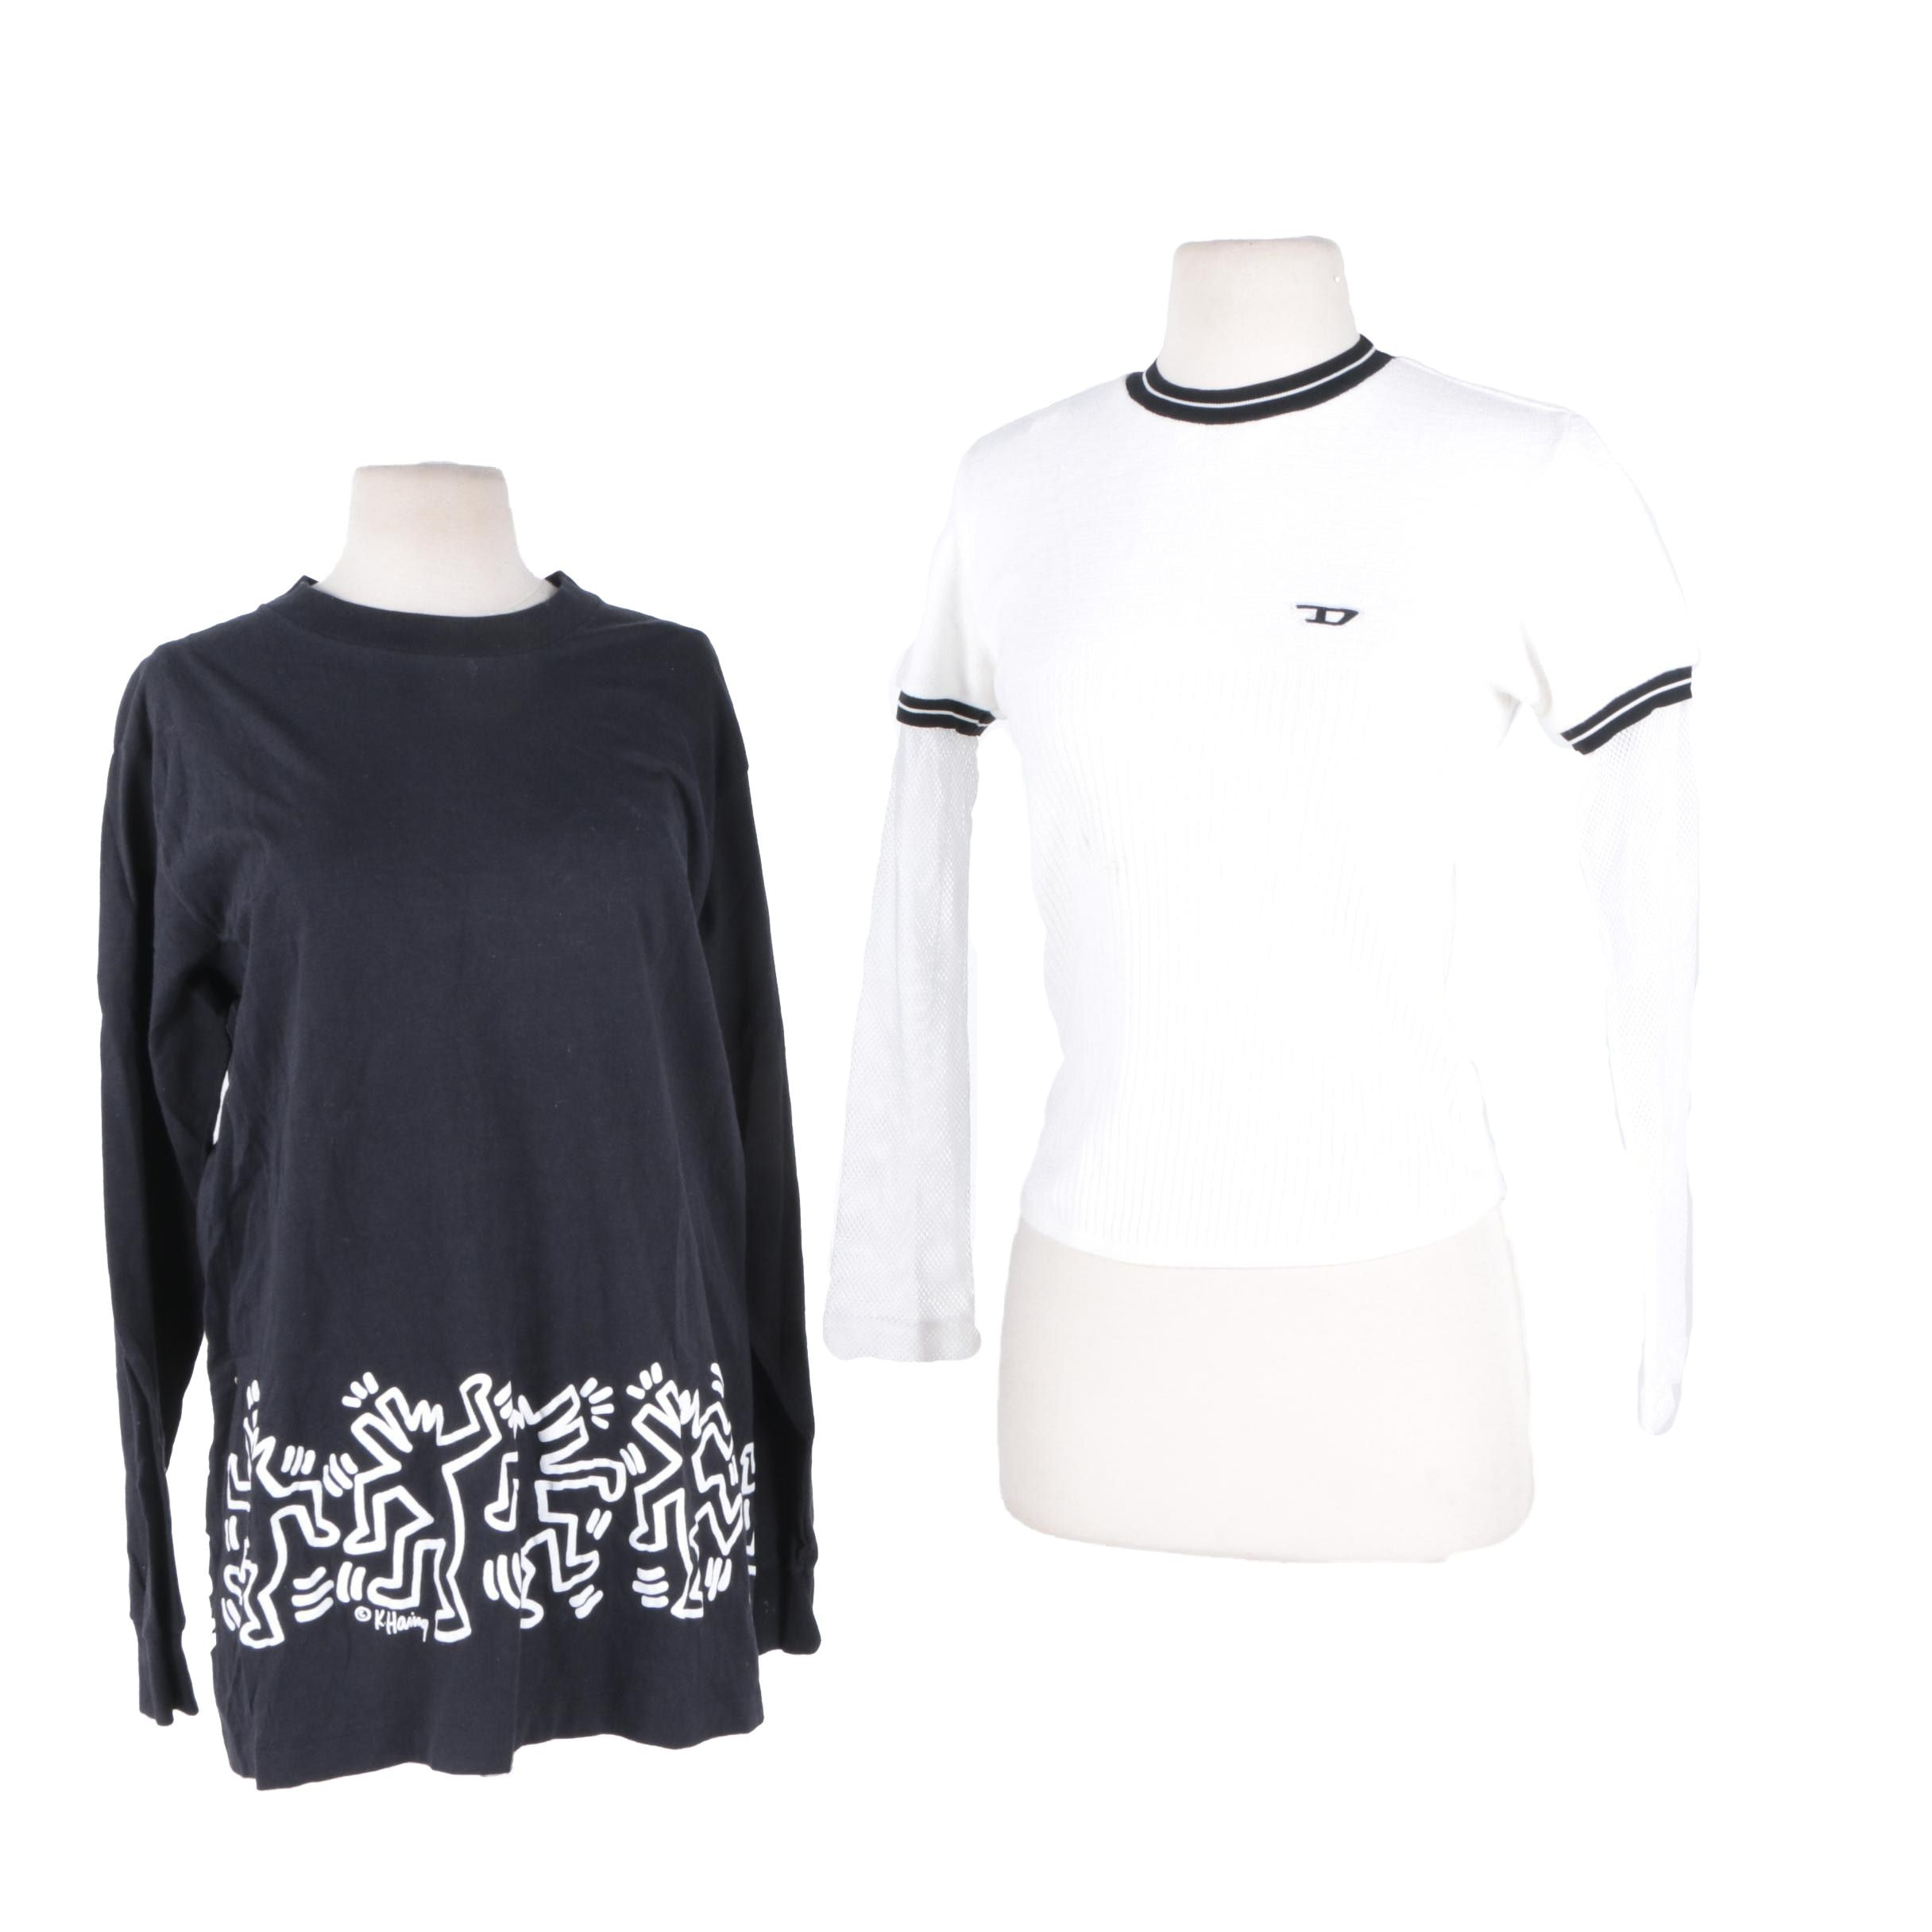 Women's Clothes Featuring a Keith Haring Designed Tee Shirt